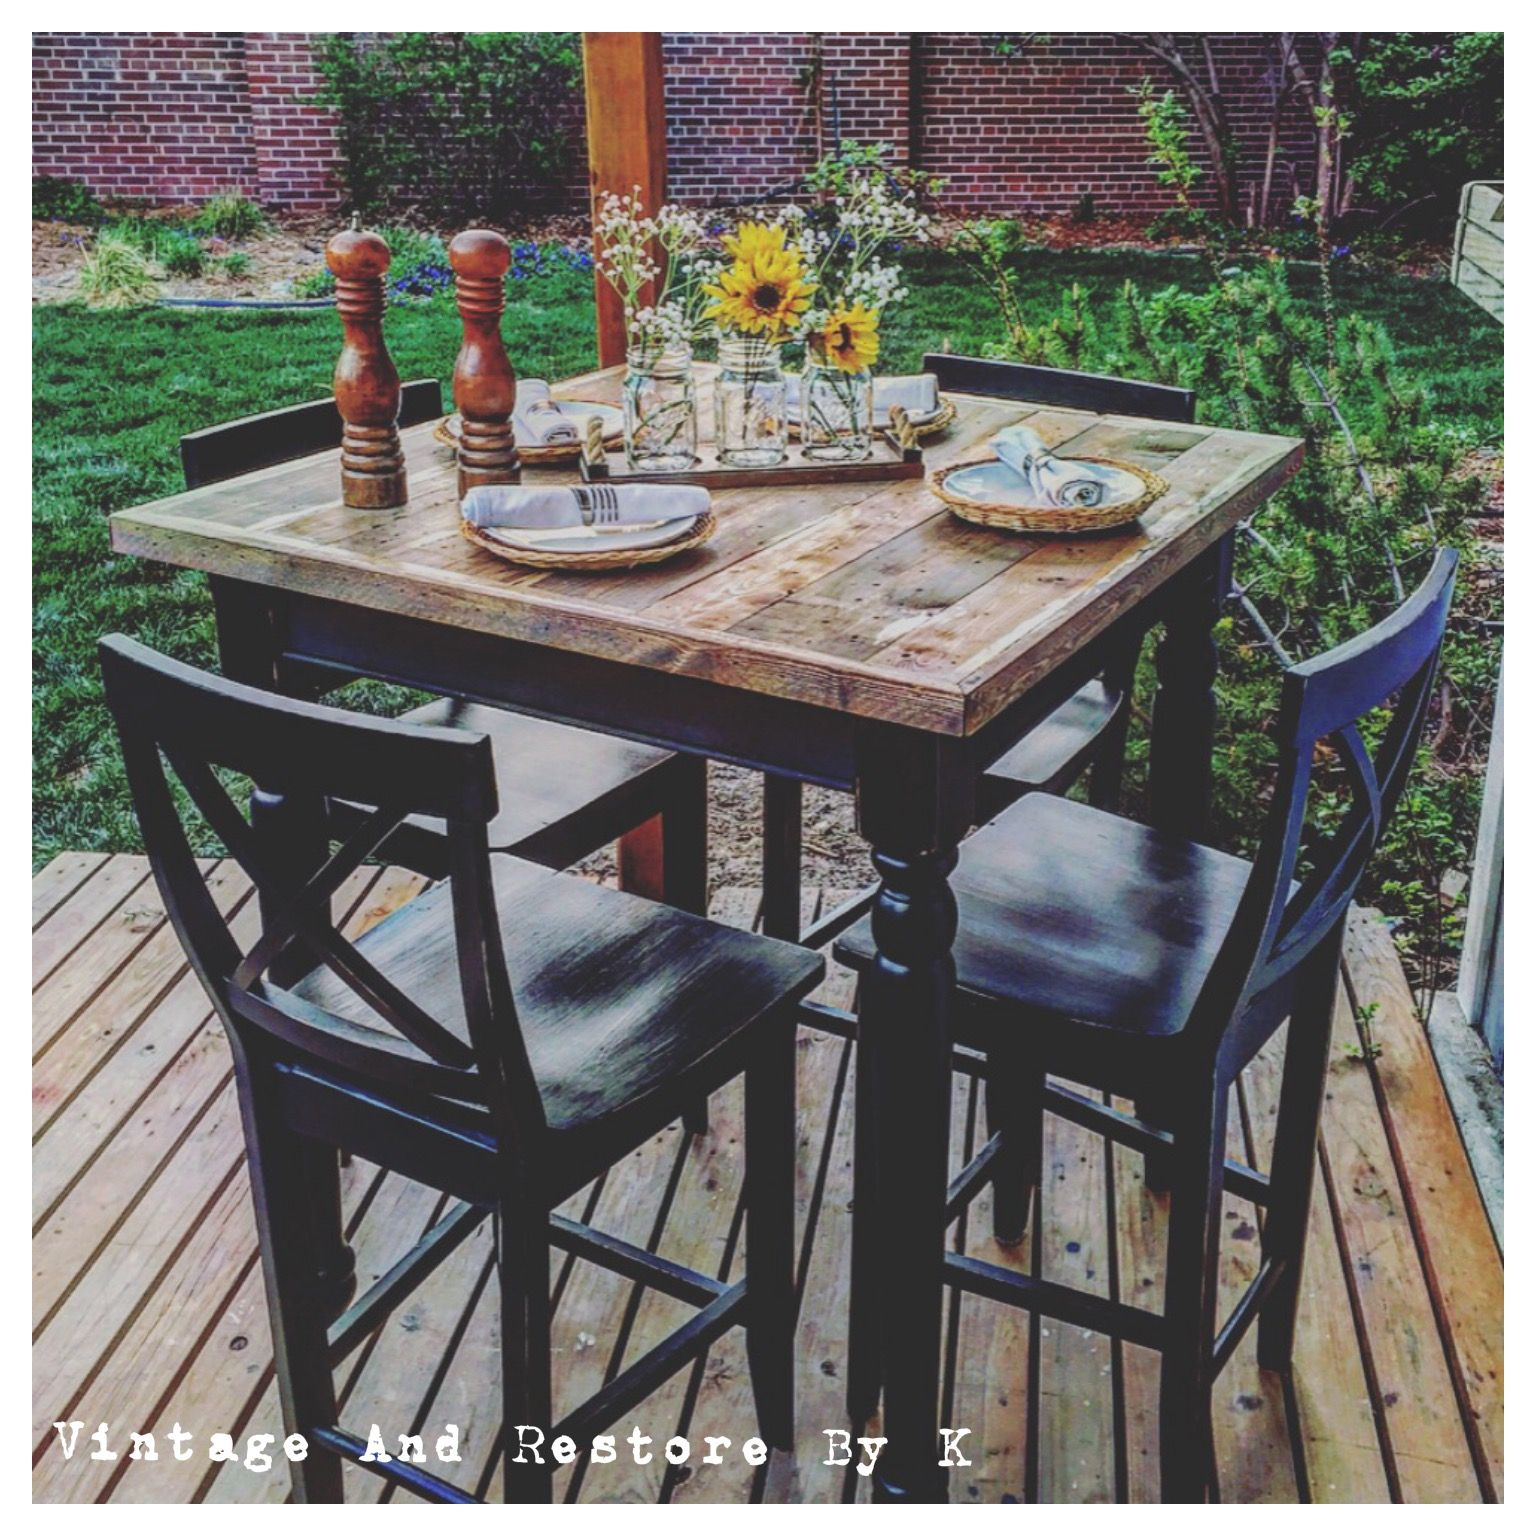 This Diy Custom Refinished Rustic High Top Table Was Painted On Our Very Own Noir Then Topped With Protective Finish